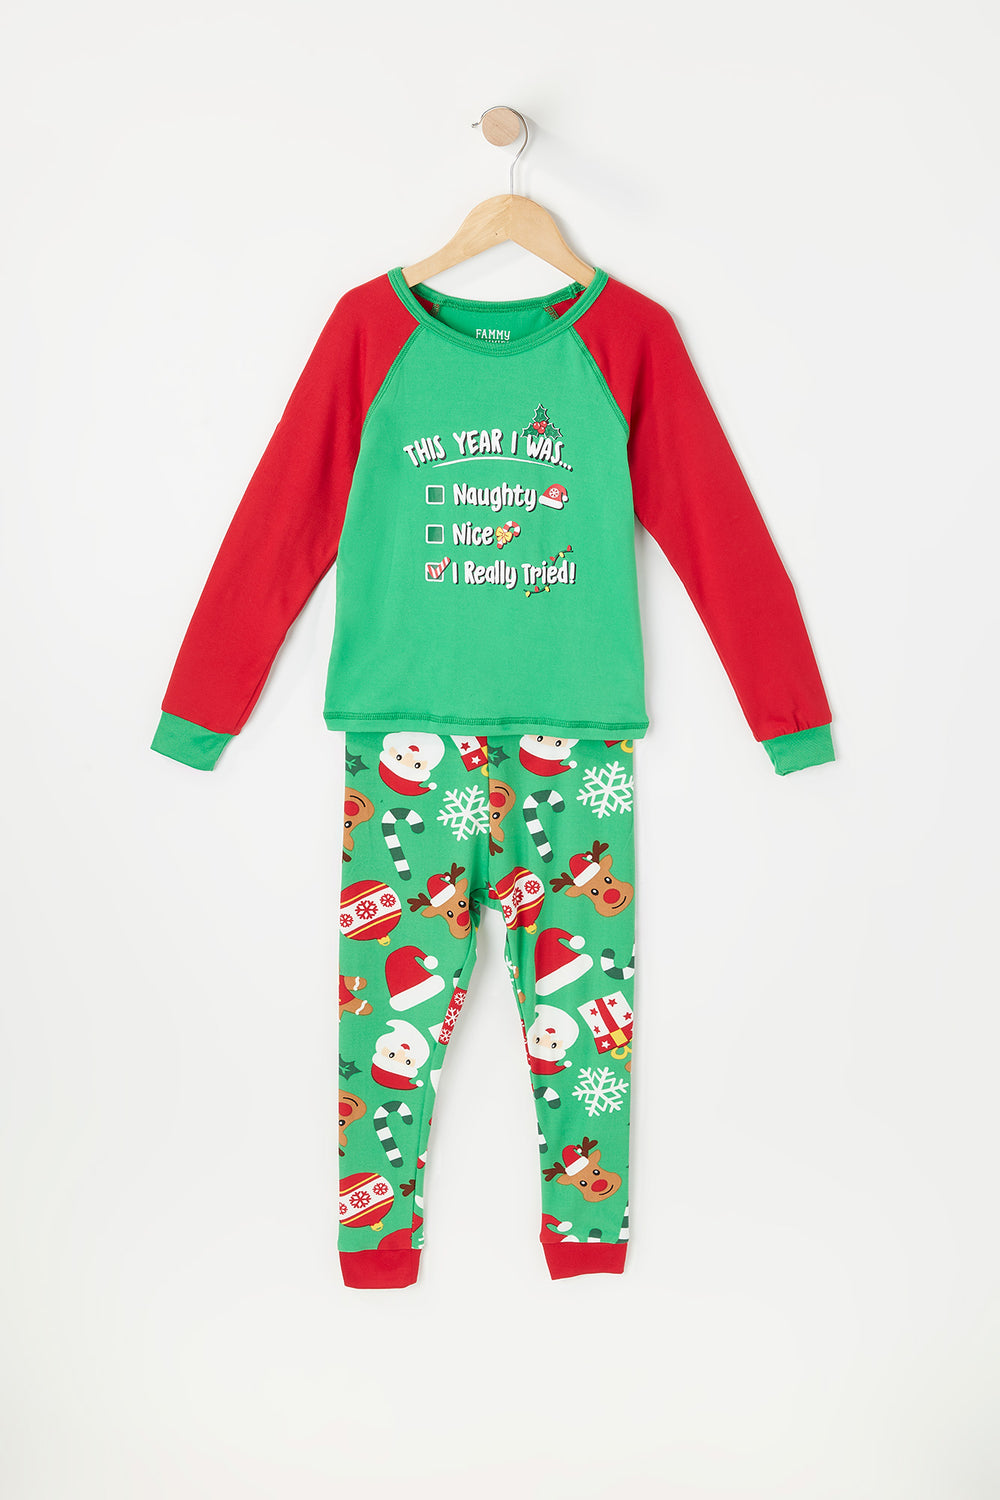 Toddler Fammy Jammies 2-Piece Christmas Naughty Or Nice List  Graphic Long Sleeve Top With Printed Bottom Pajama Set Green